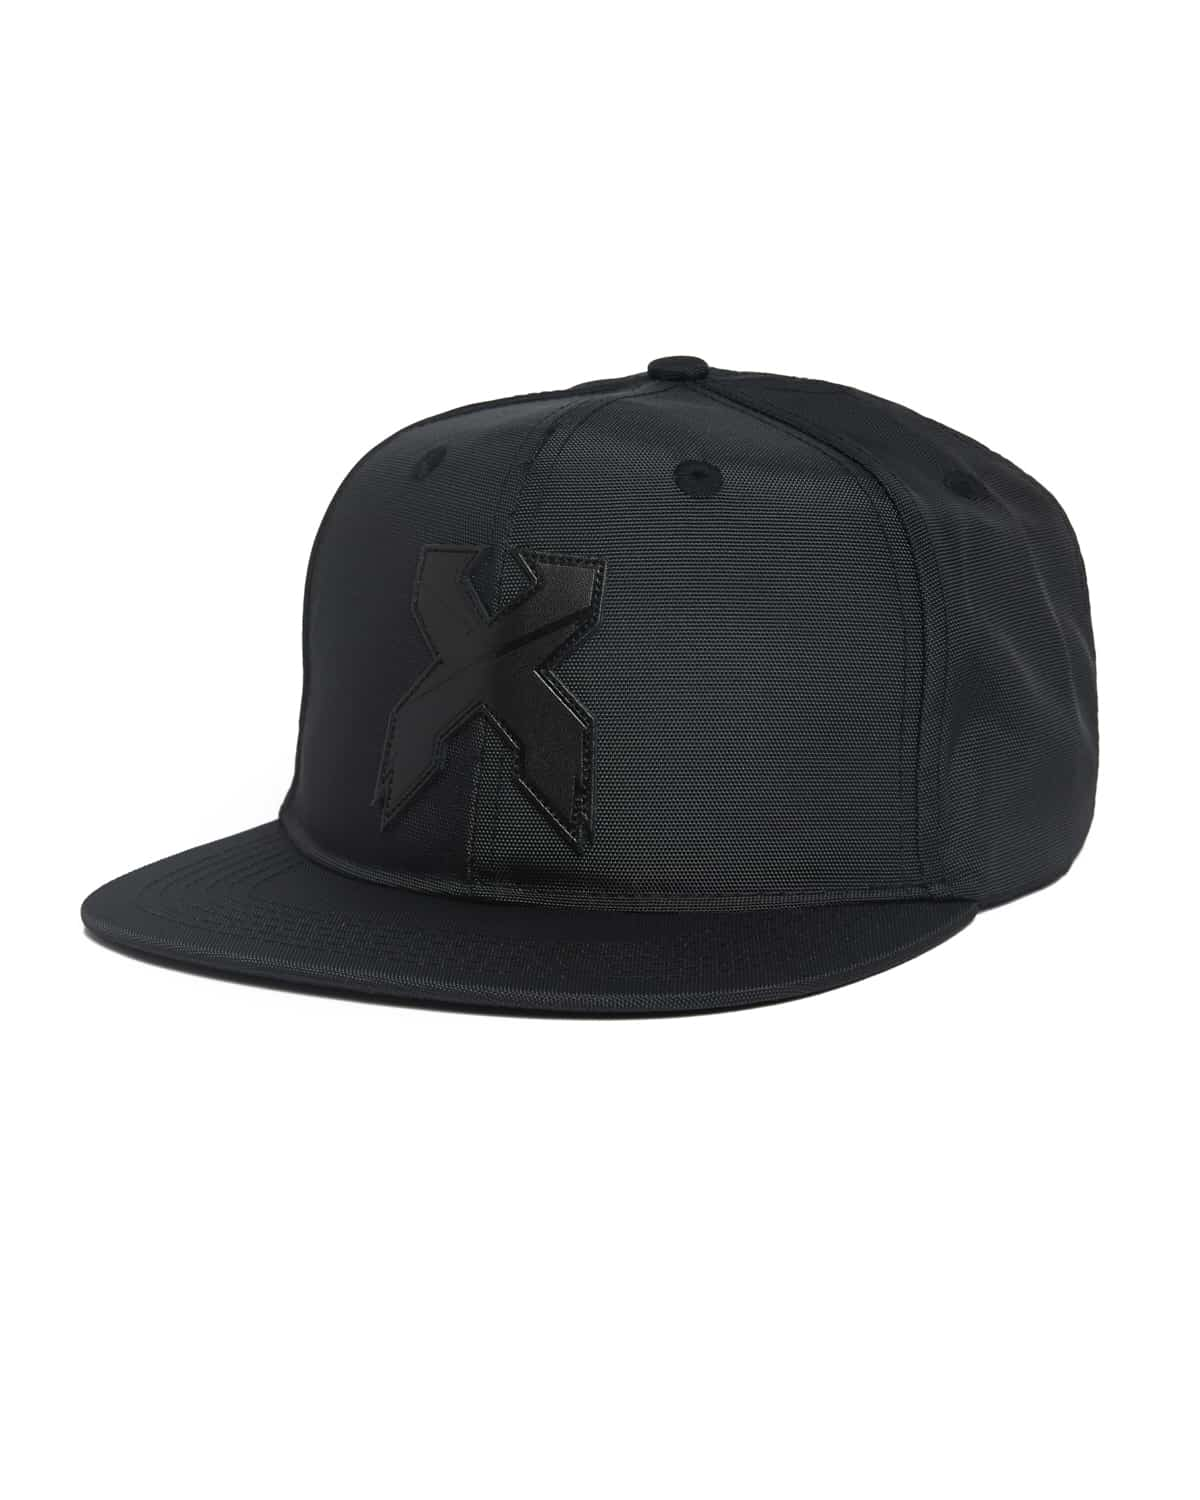 Excision 'Sliced' Ballistic Snapback - Black